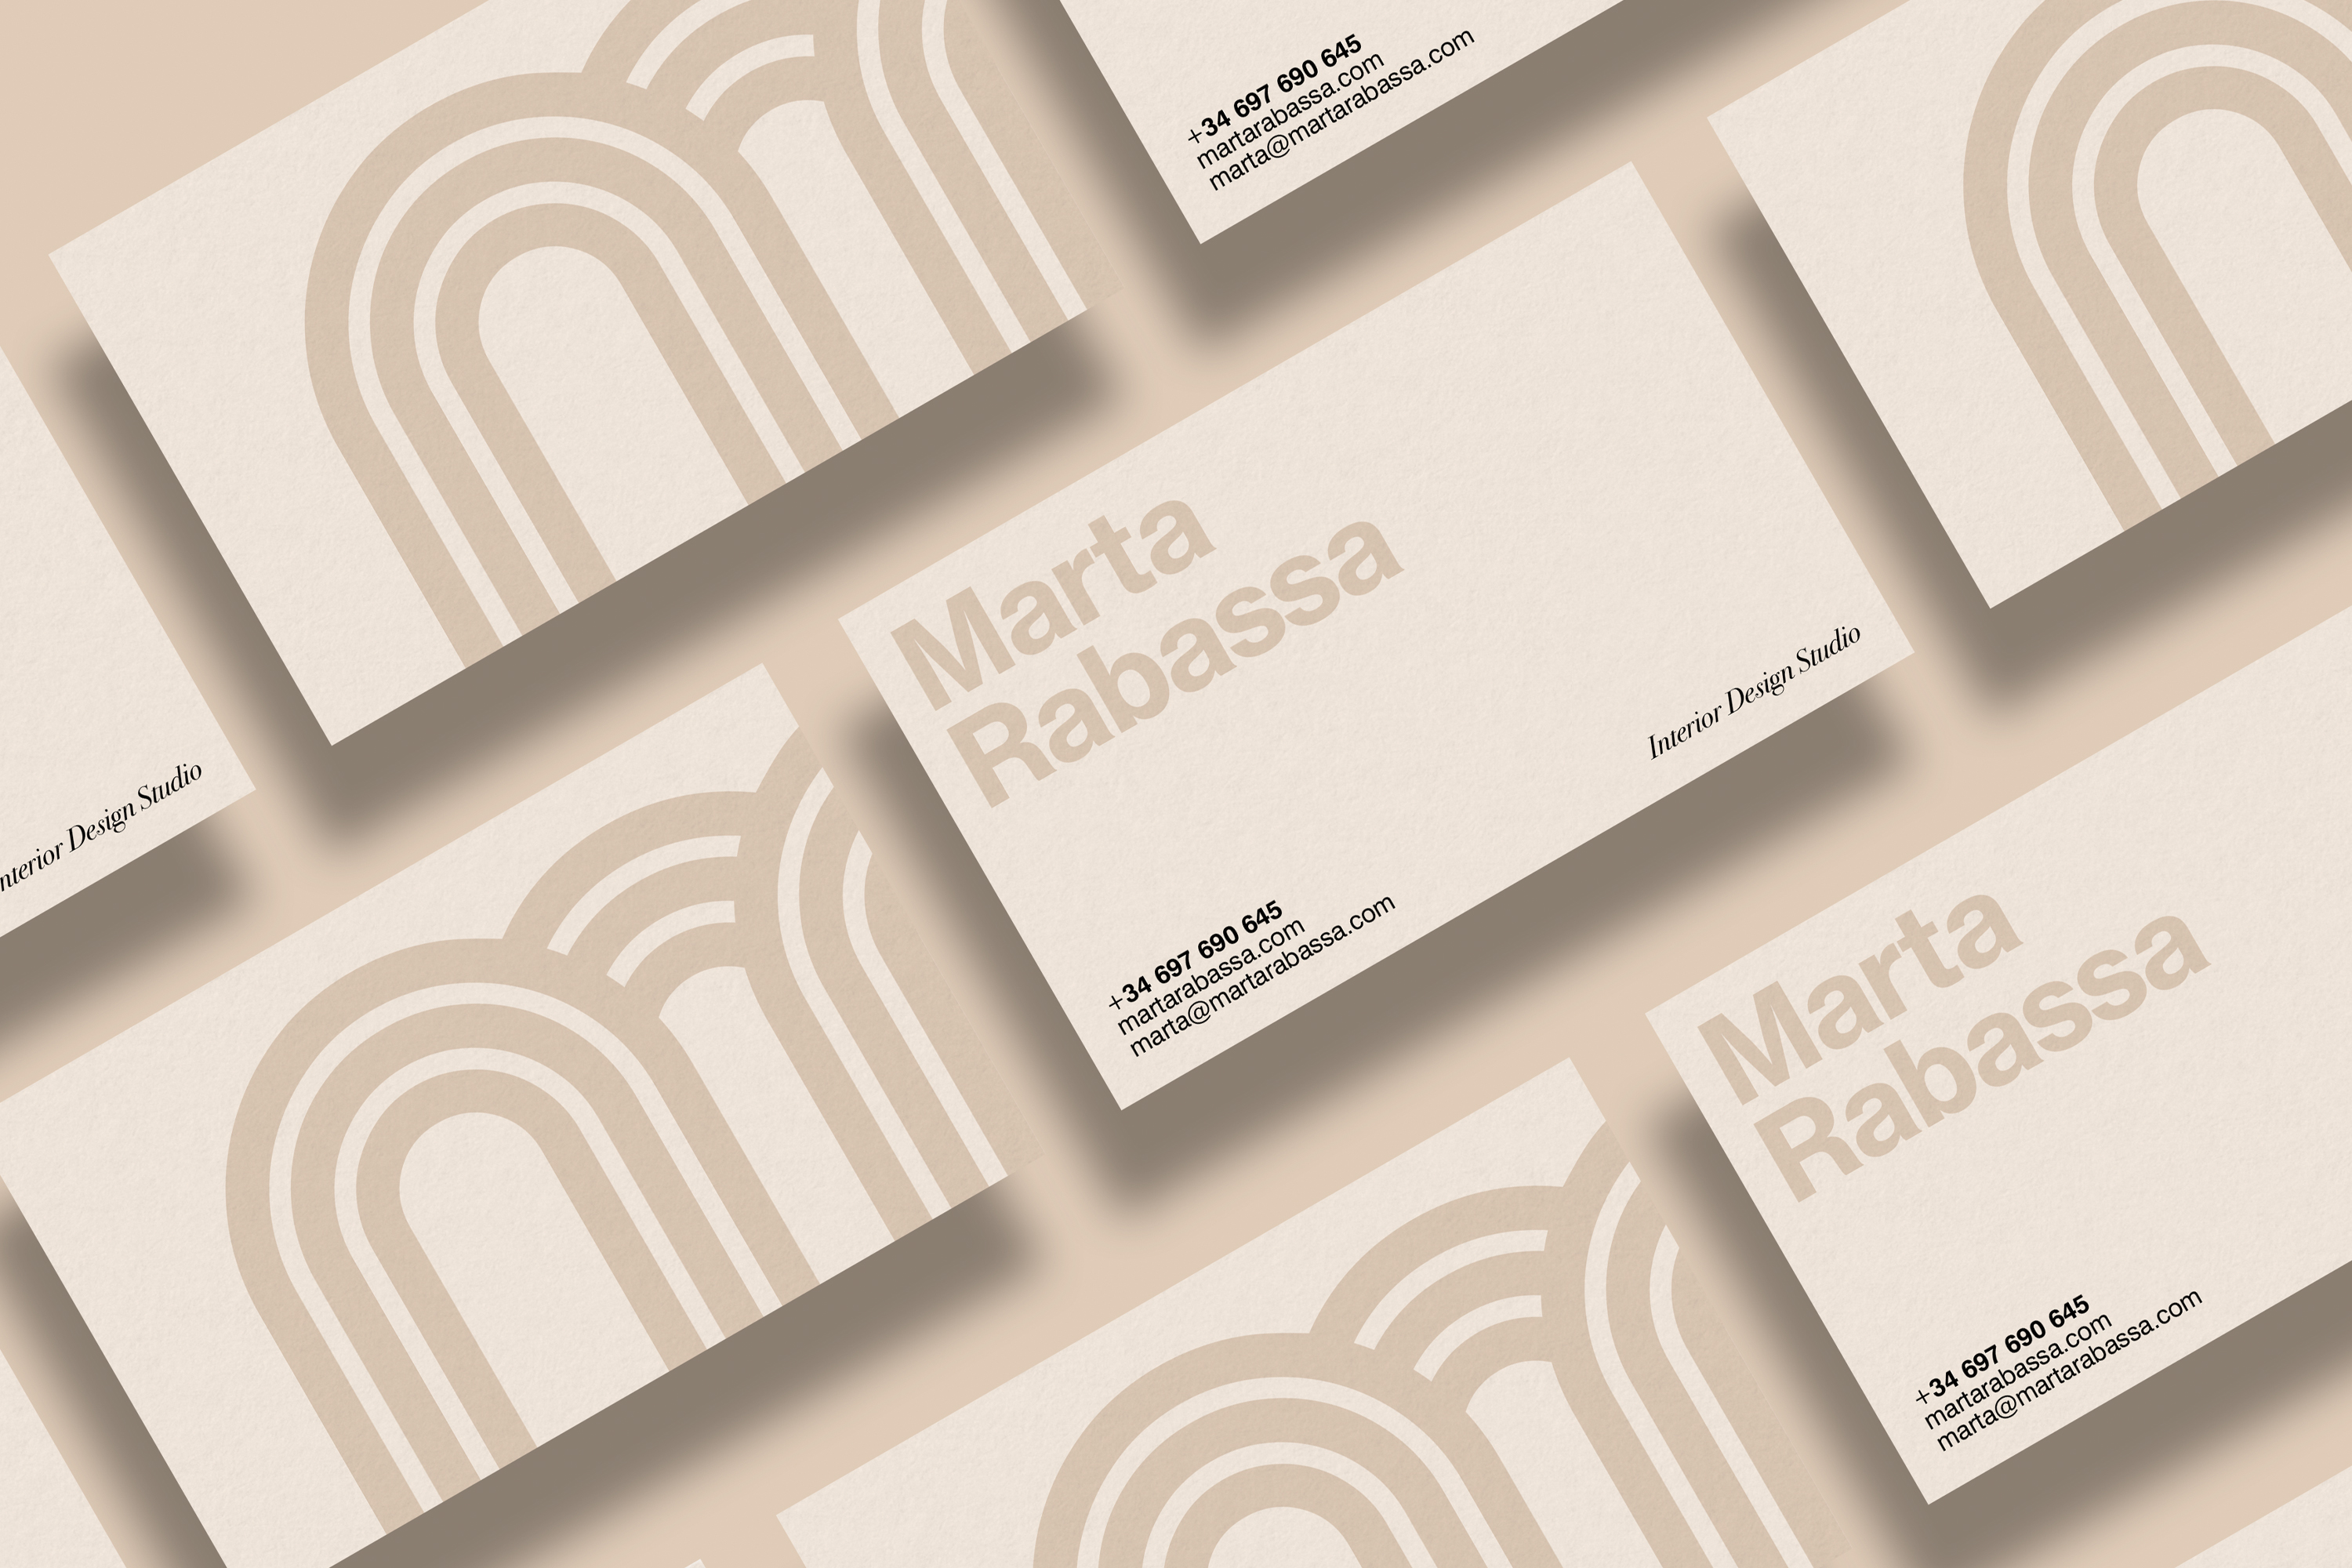 2Design Marta Rabassa business card